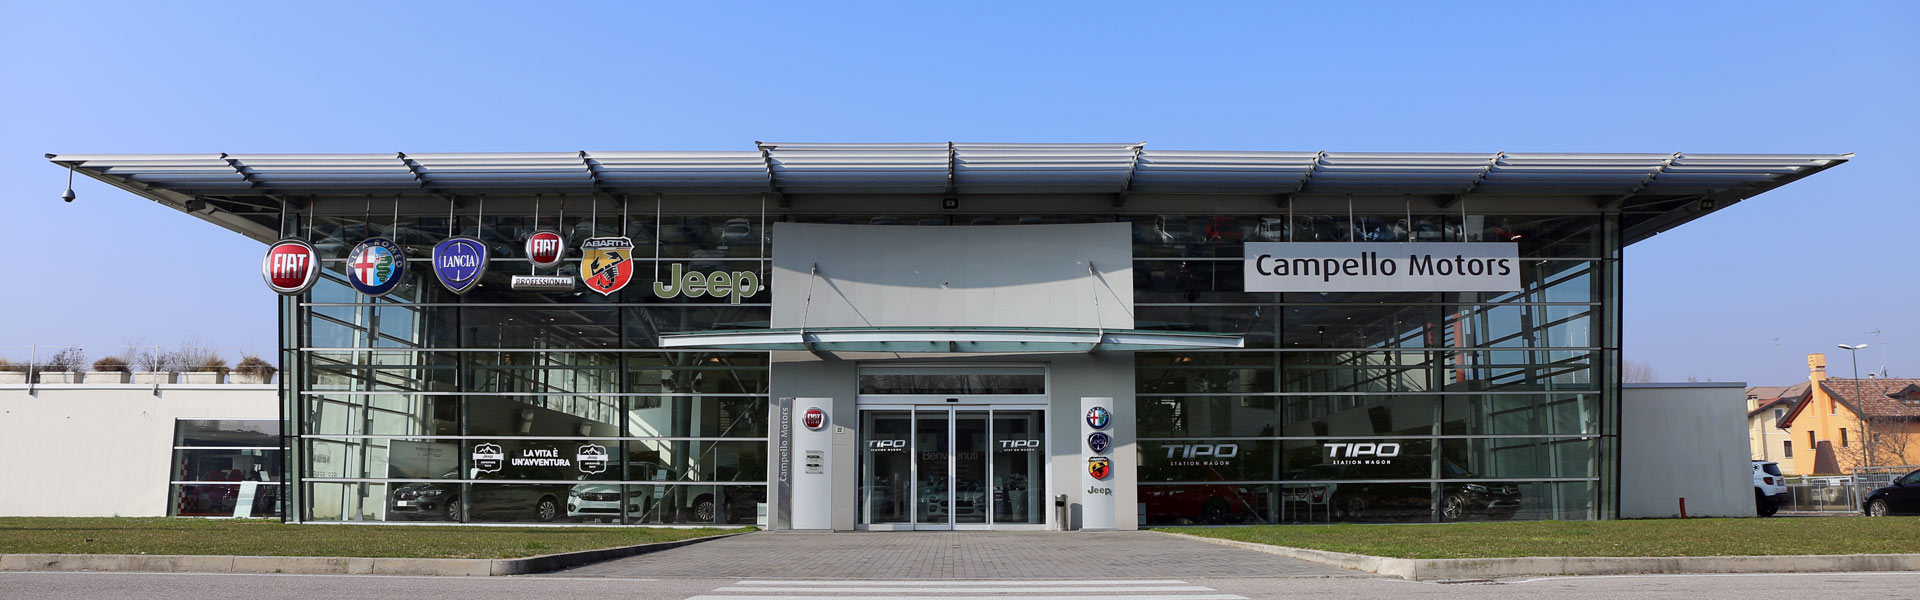 Campello Motors via Saragat